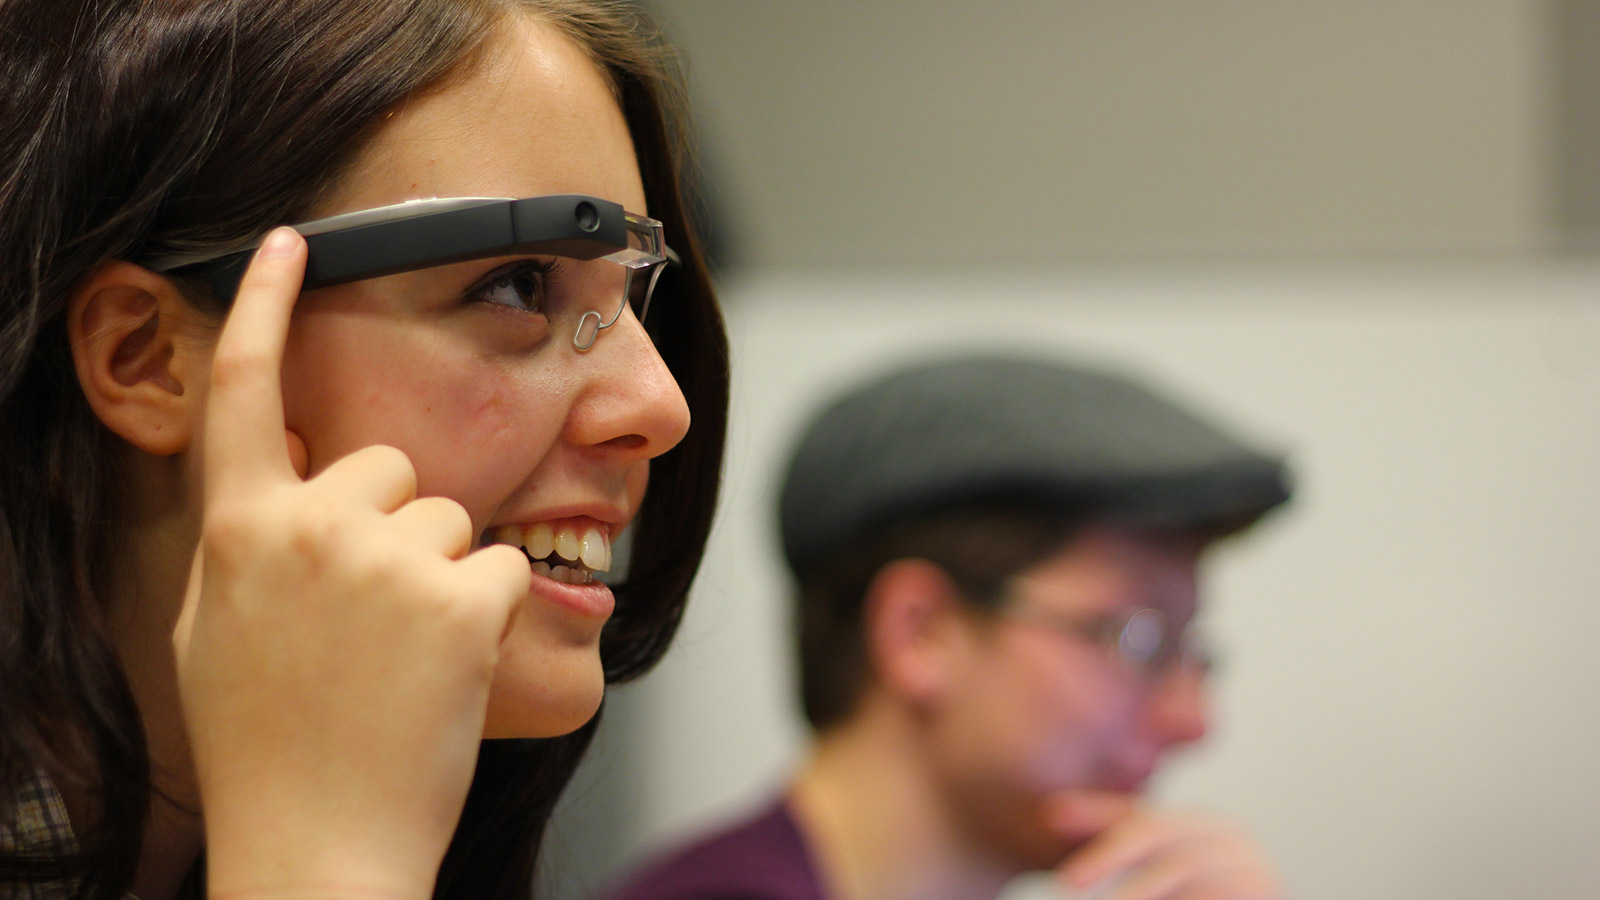 Google Glass: links to tools and technology page